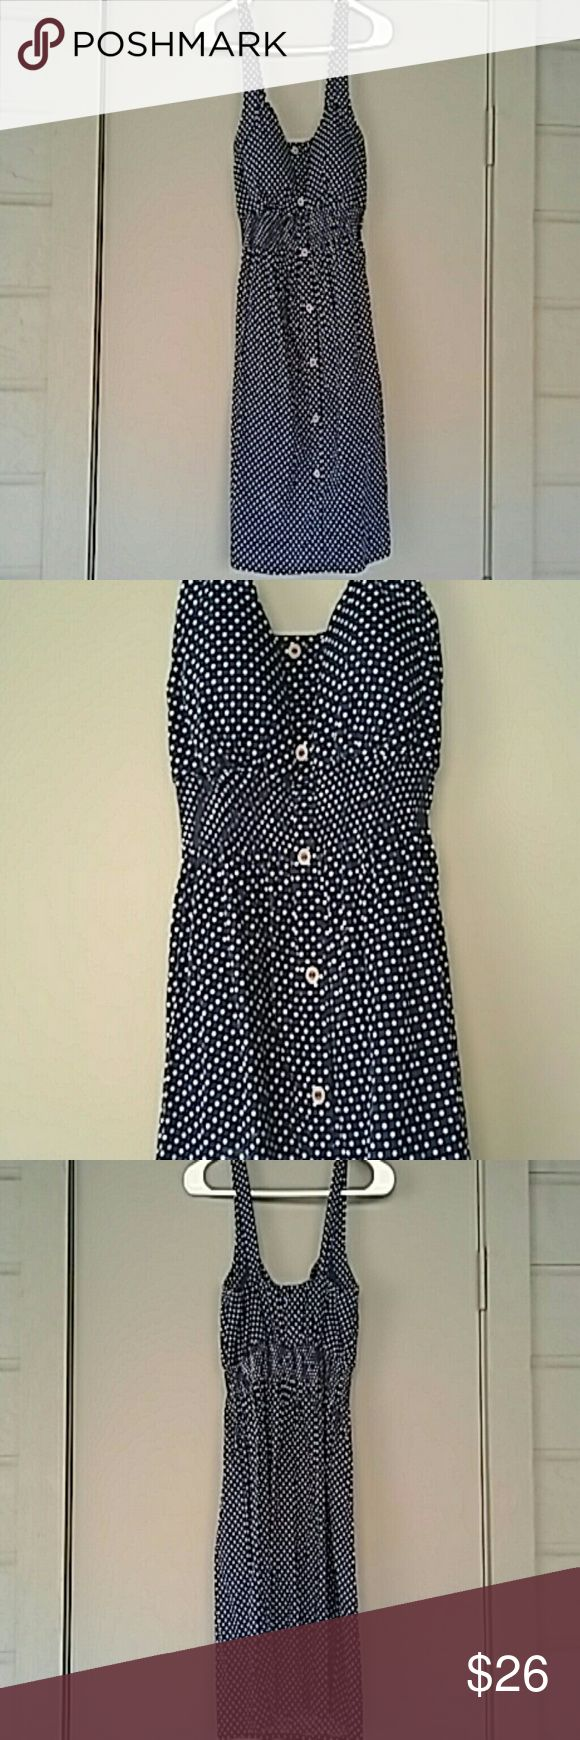 Super cute blue and white polka dot summer dress! Blue and white polka dot dress with brown buttons up front. Stretchy empire waist. Great for some summer fun! Rhapsody Dresses Mini